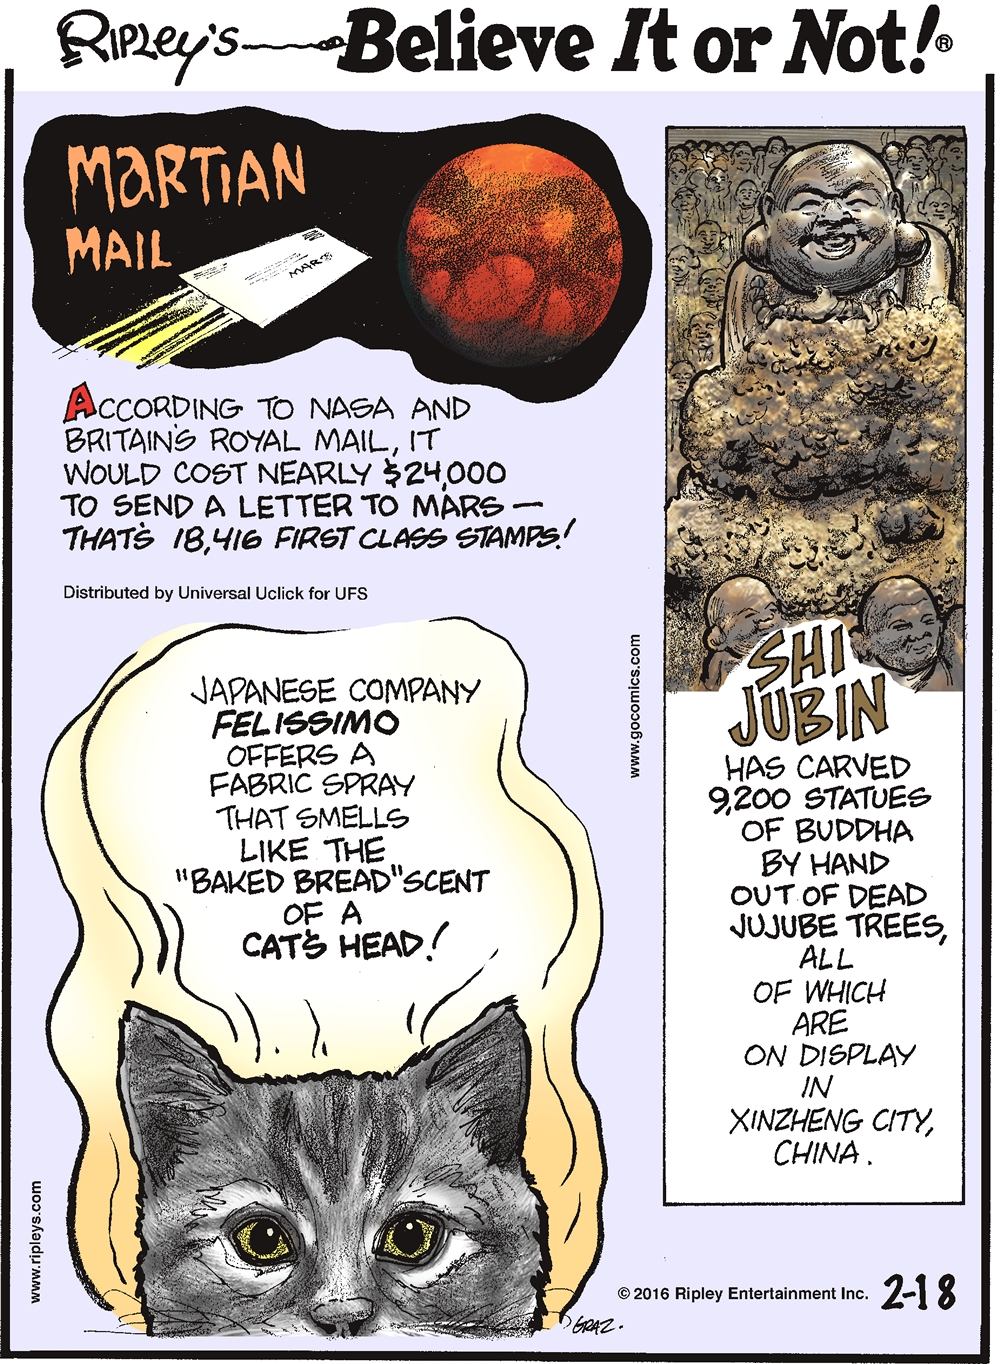 "Martian Mail According to NASA and Britain's Royal mail, it would cost nearly $24,000 to send a letter to Mars—that's 18,416 first class stamps! -------------------- Japanese company Felissimo offers a fabric spray that smells like the ""baked bread"" scent of a cat's head! -------------------- Shi Jubin has carved 9,200 statues of Buddha by hand out of dead jujube trees, all of which are on display in Xinzheng City, China."